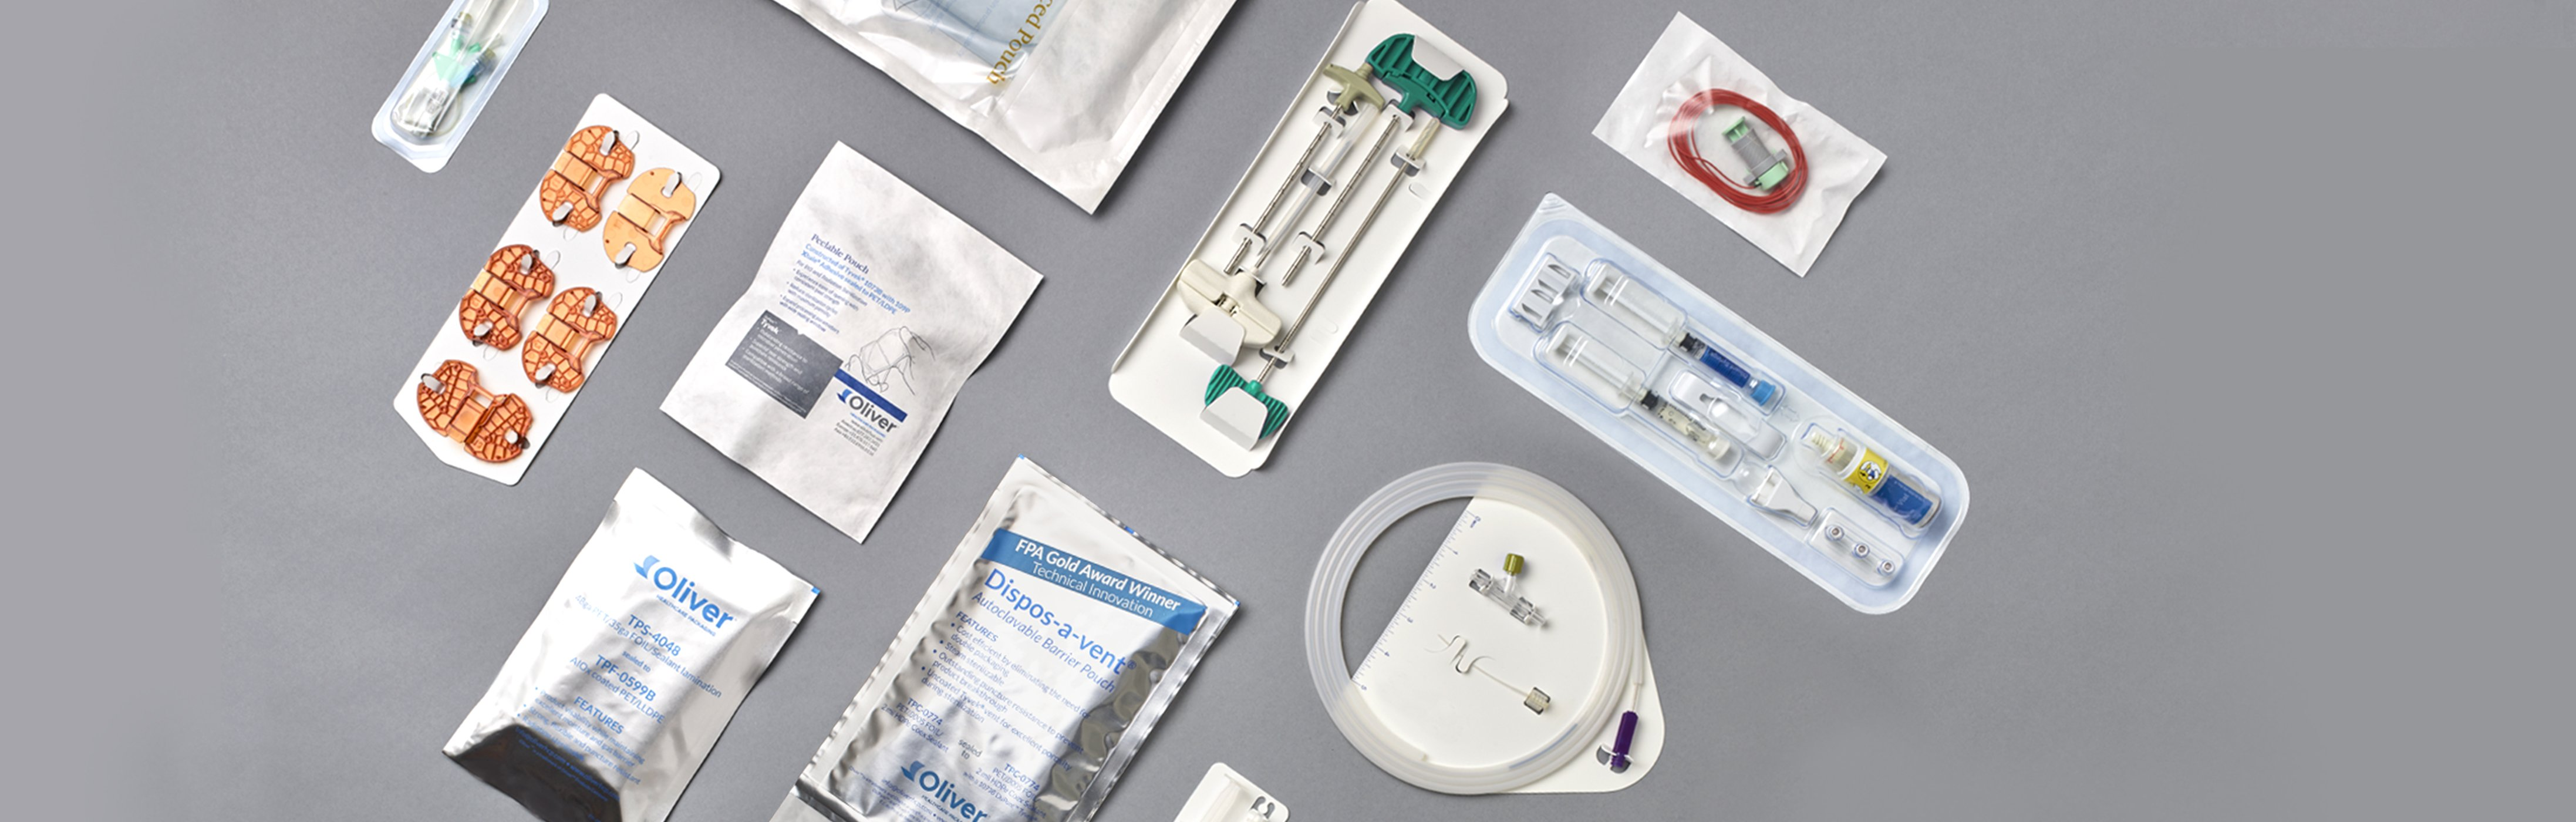 Healthcare, Medical & Pharmaceutical Packaging Products